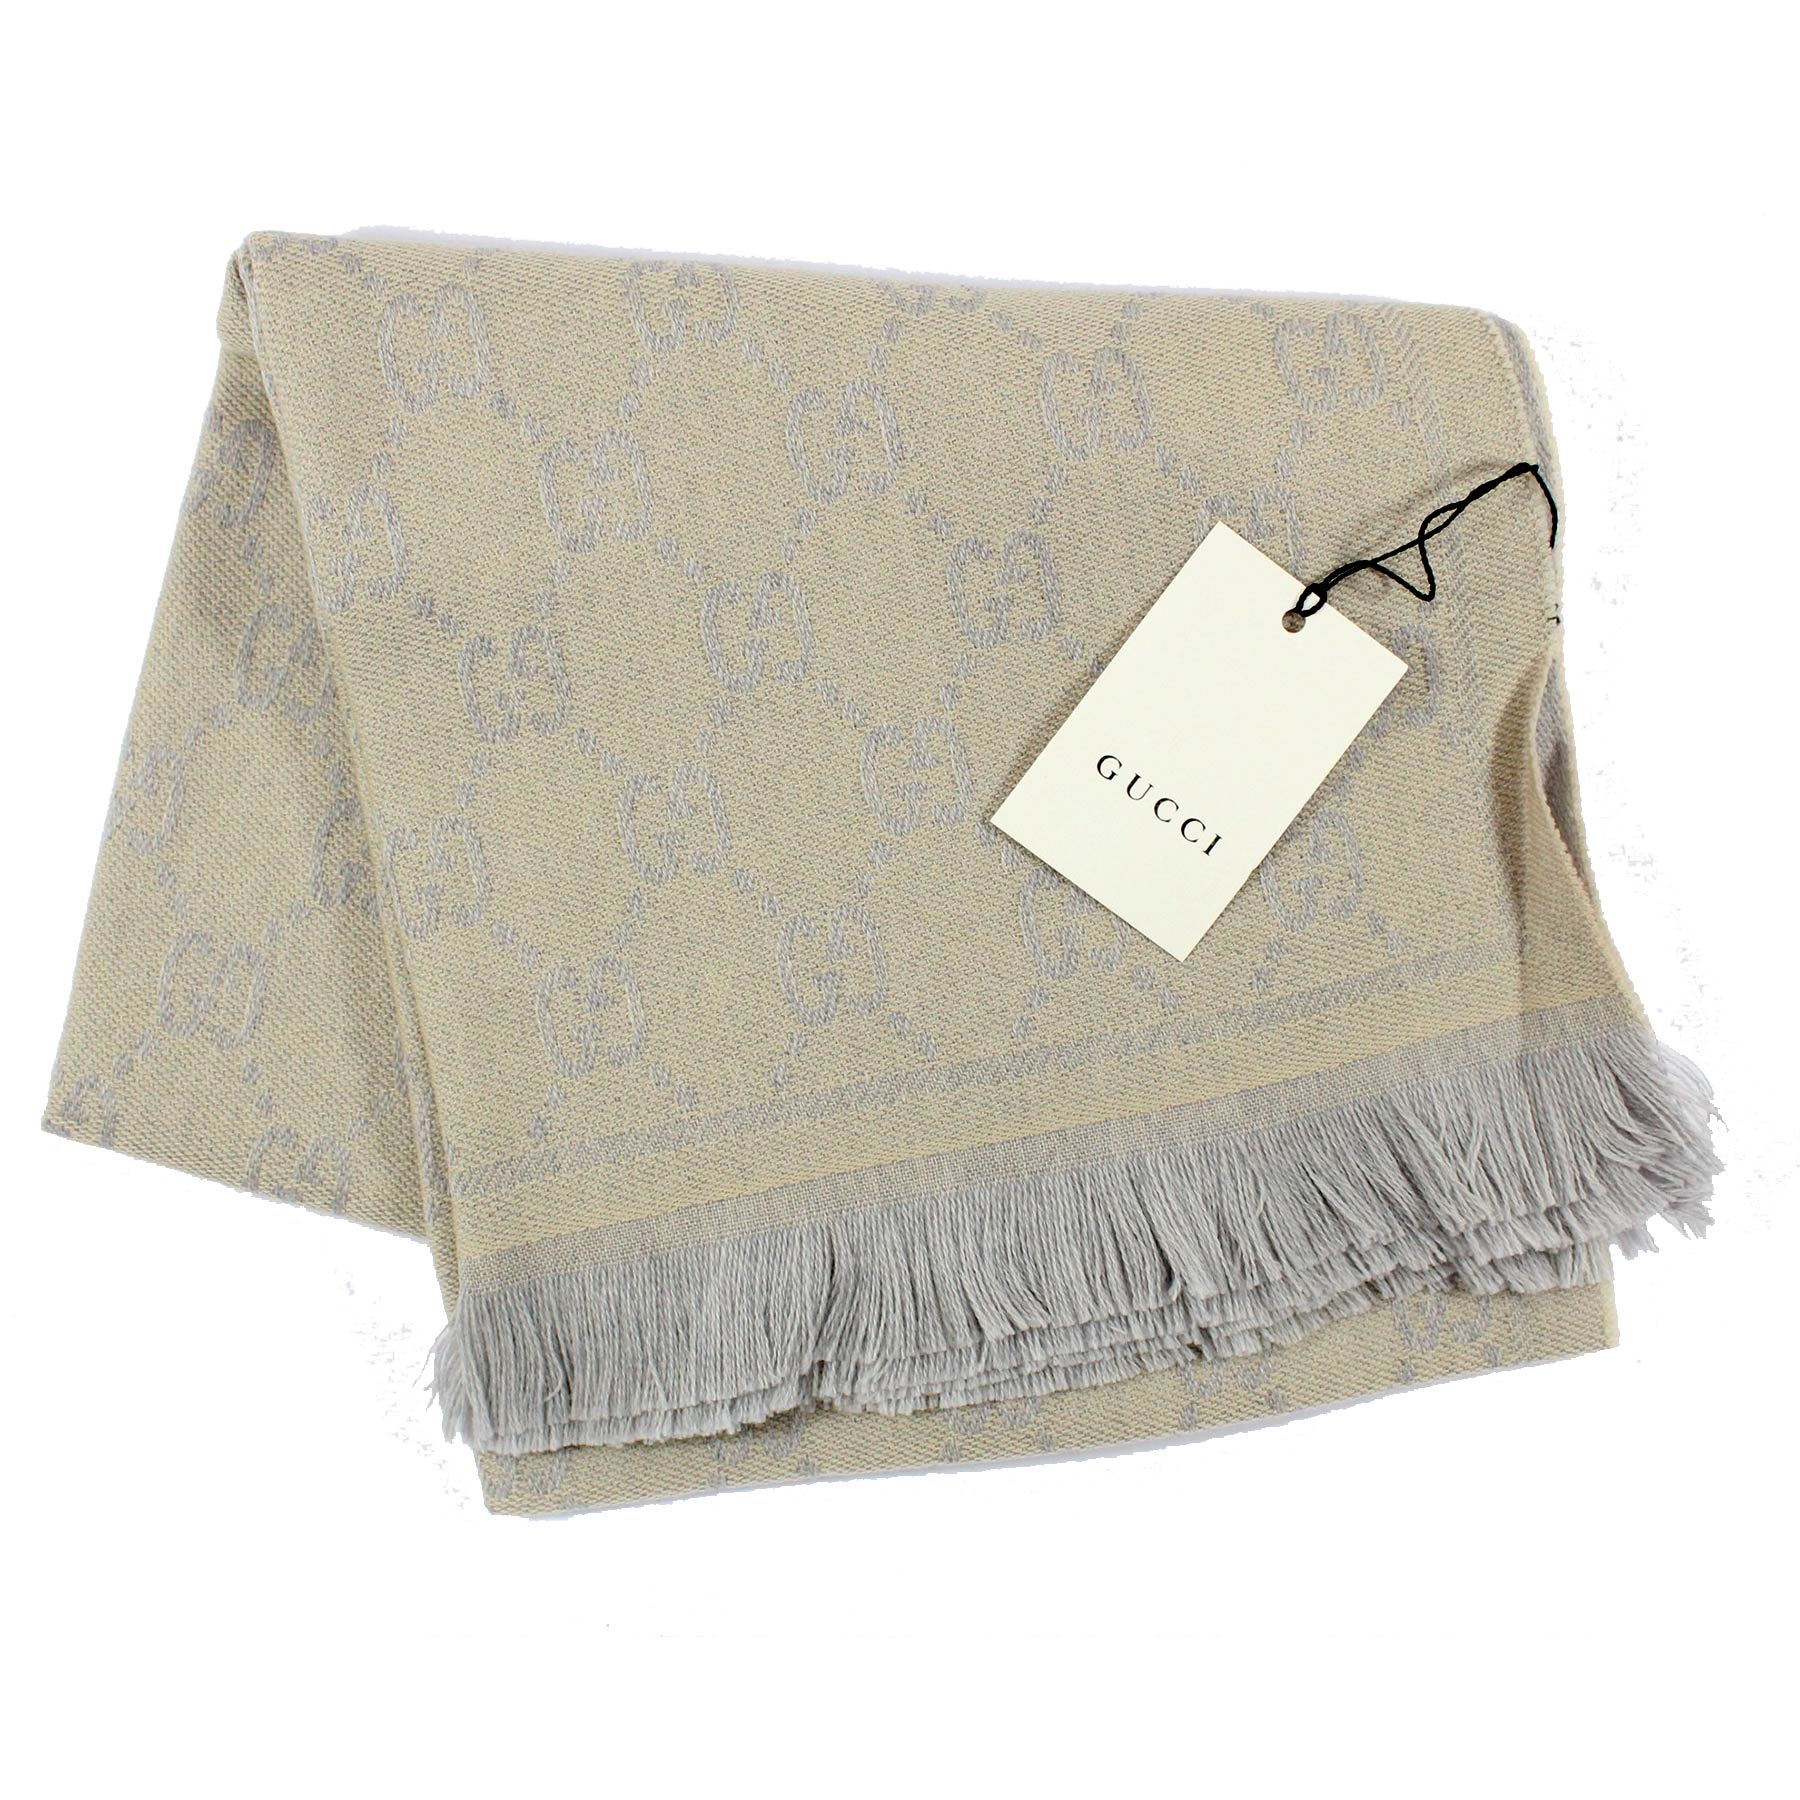 Gucci Wool Scarf Oatmeal Gray GG Design Shawl SALE